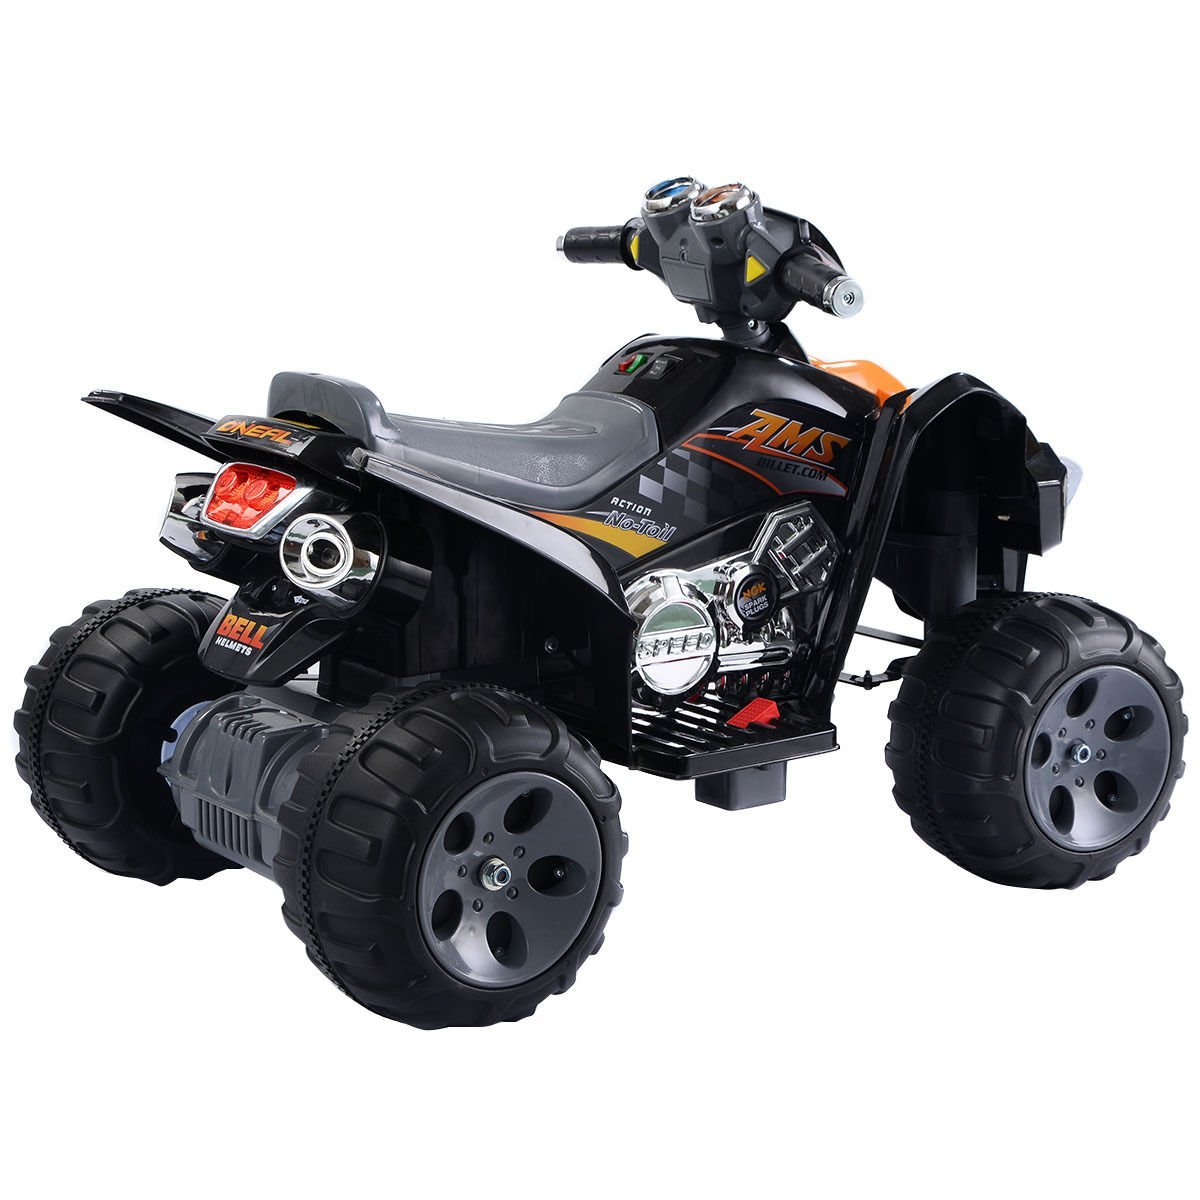 Amazon com giantex kids ride on atv quad 4 wheeler electric toy car 12v battery power black toys games